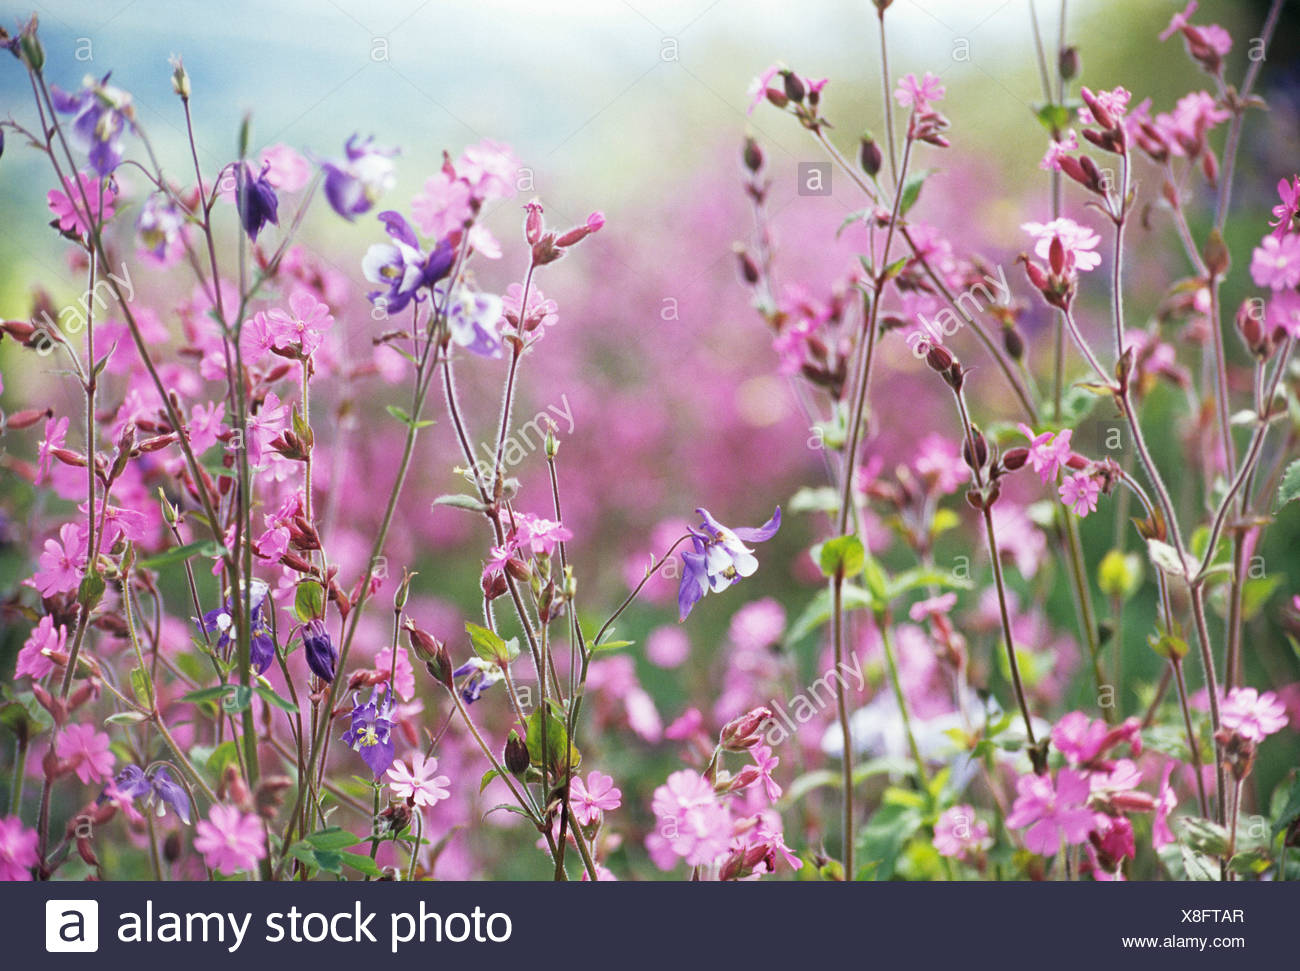 Lychnis flos jovis campion abundant small pink flowers on long lychnis flos jovis campion abundant small pink flowers on long stems mightylinksfo